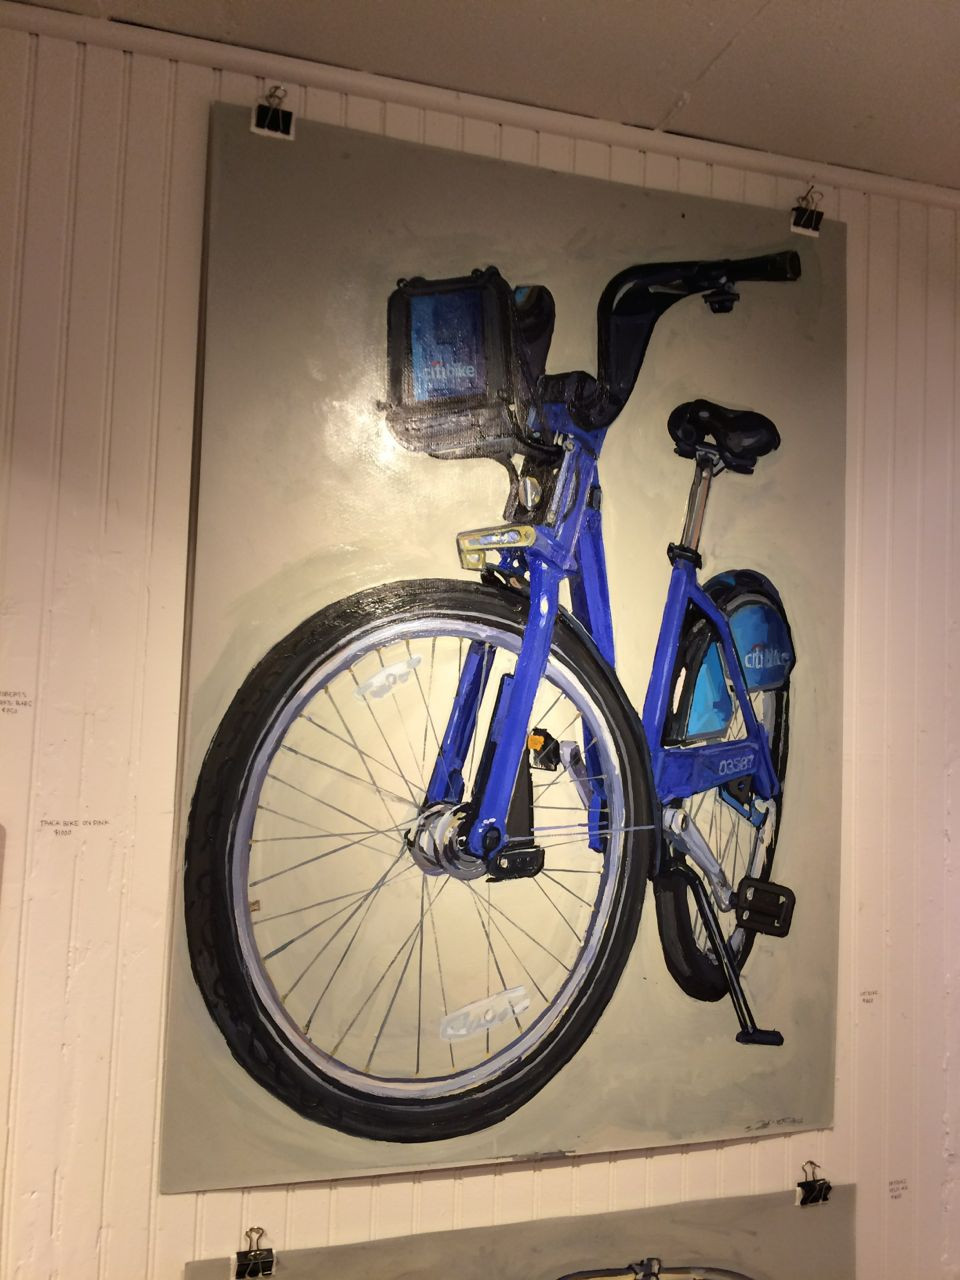 Yup, that's a portrait of a CitiBike!